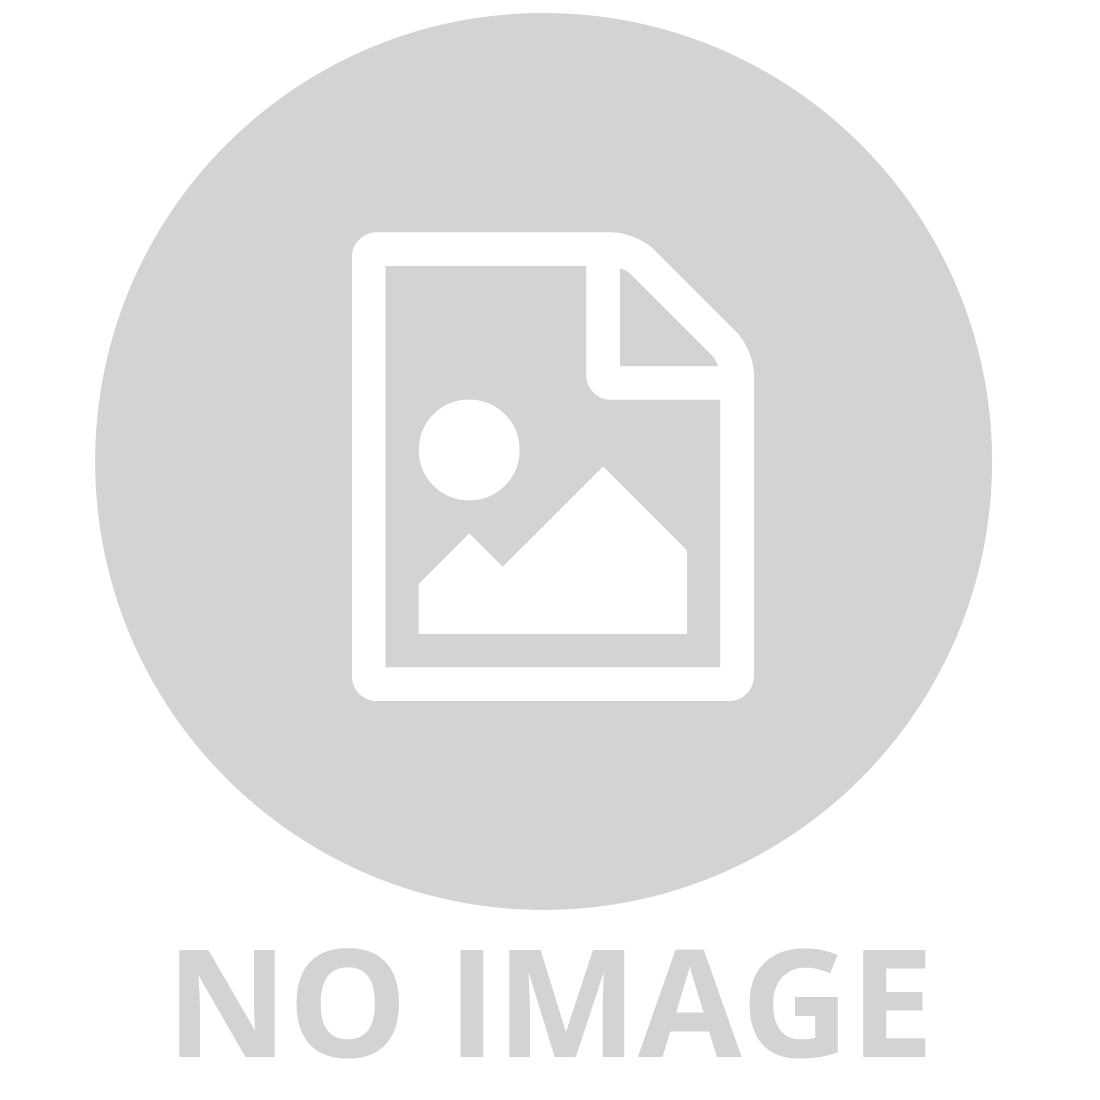 TIKK TOKK RESIN CHAIR BLUE